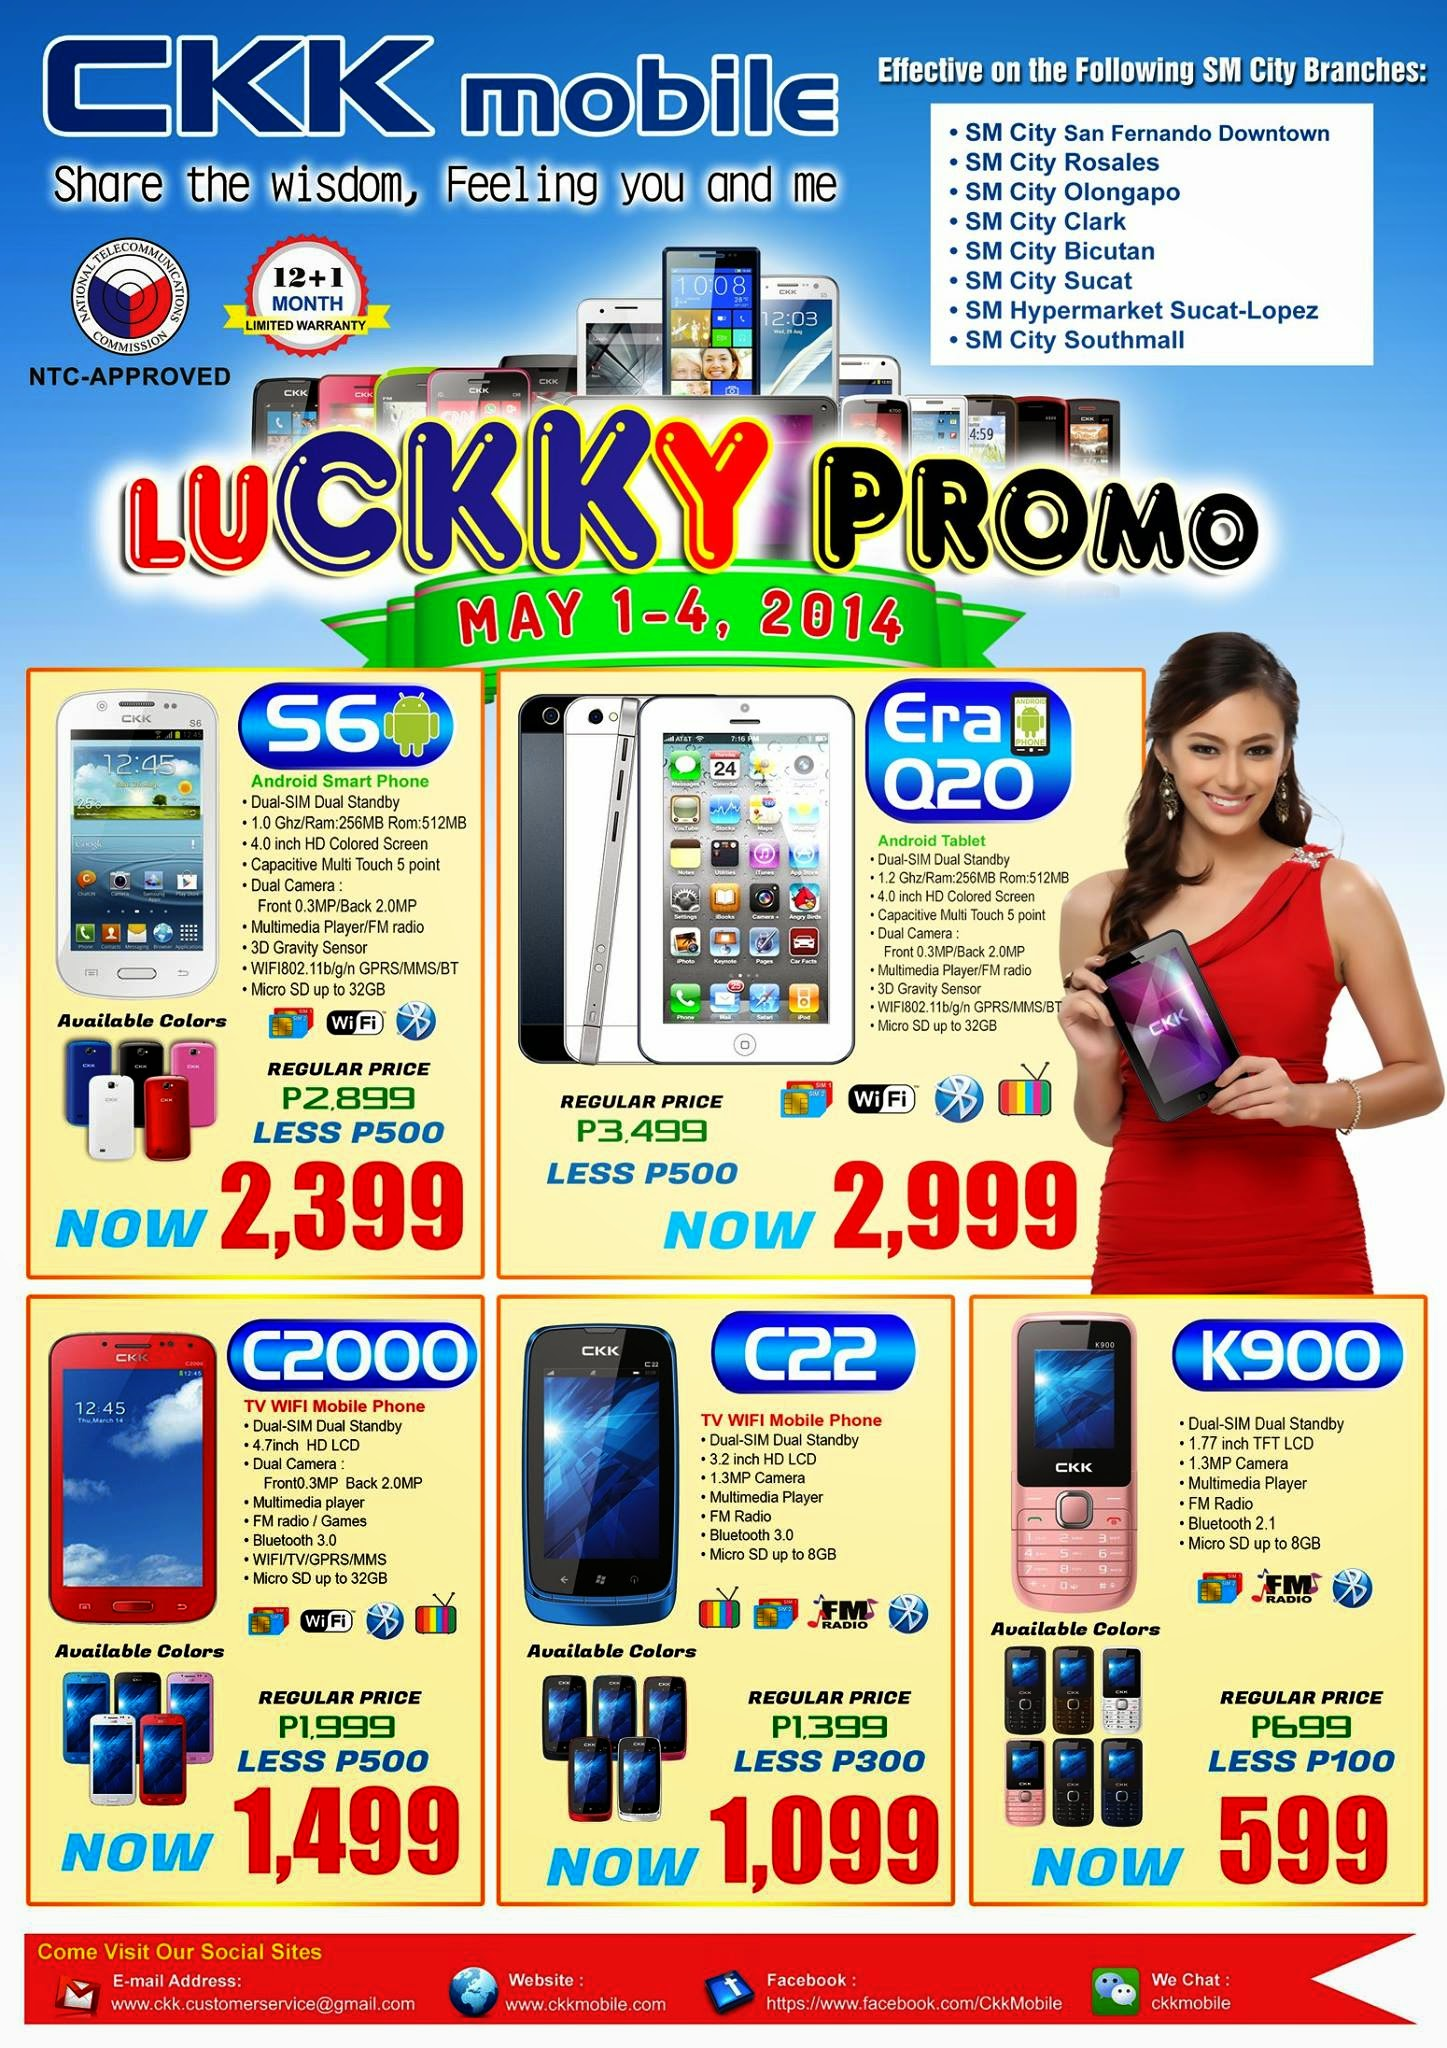 Image of CKK Mobile LuCKKy Promo Sale for May 2014